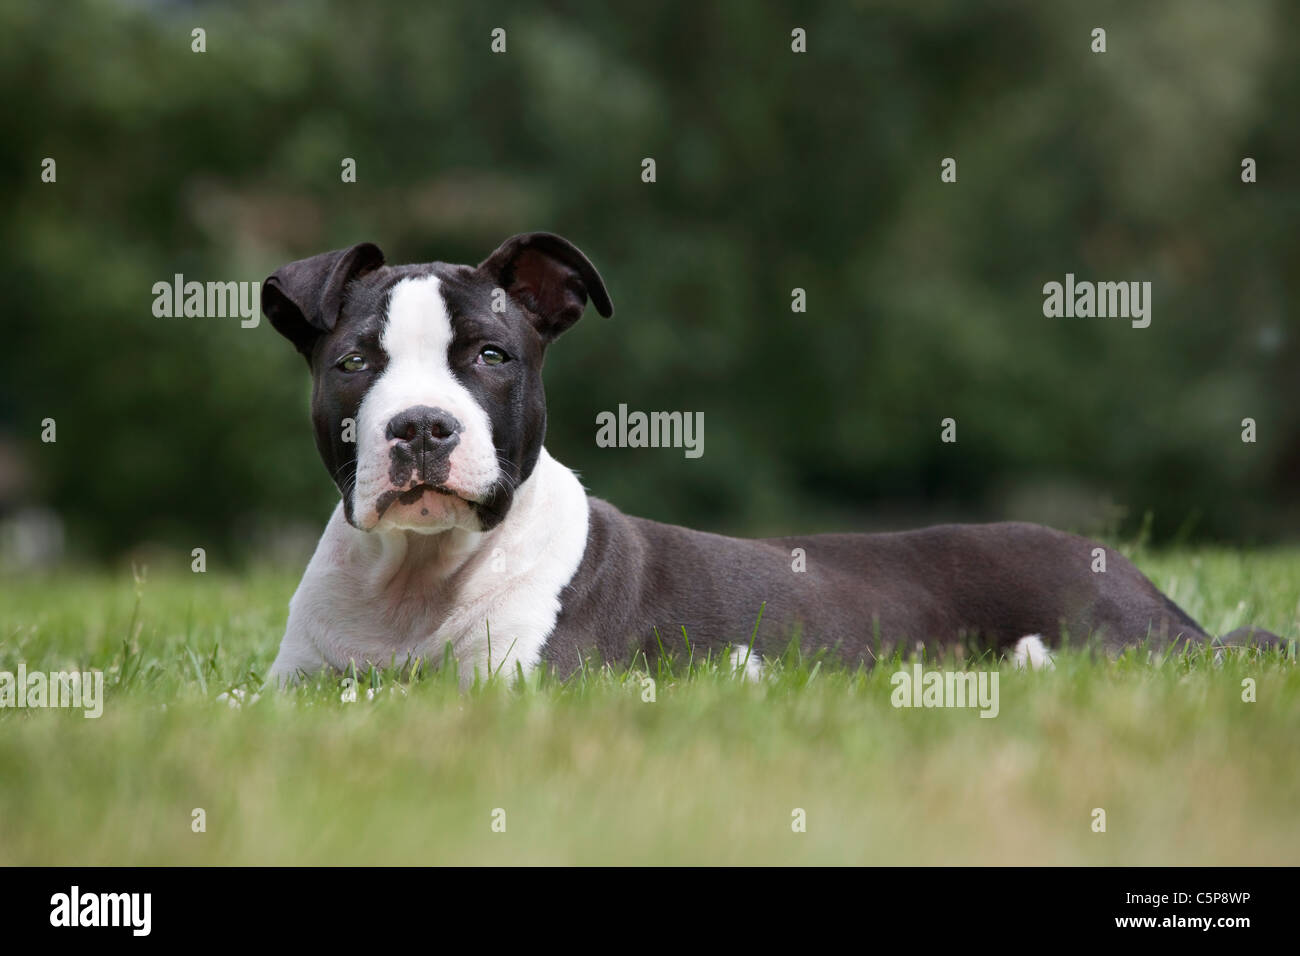 American Staffordshire terrier (Canis lupus familiaris) lying on lawn in garden Stock Photo